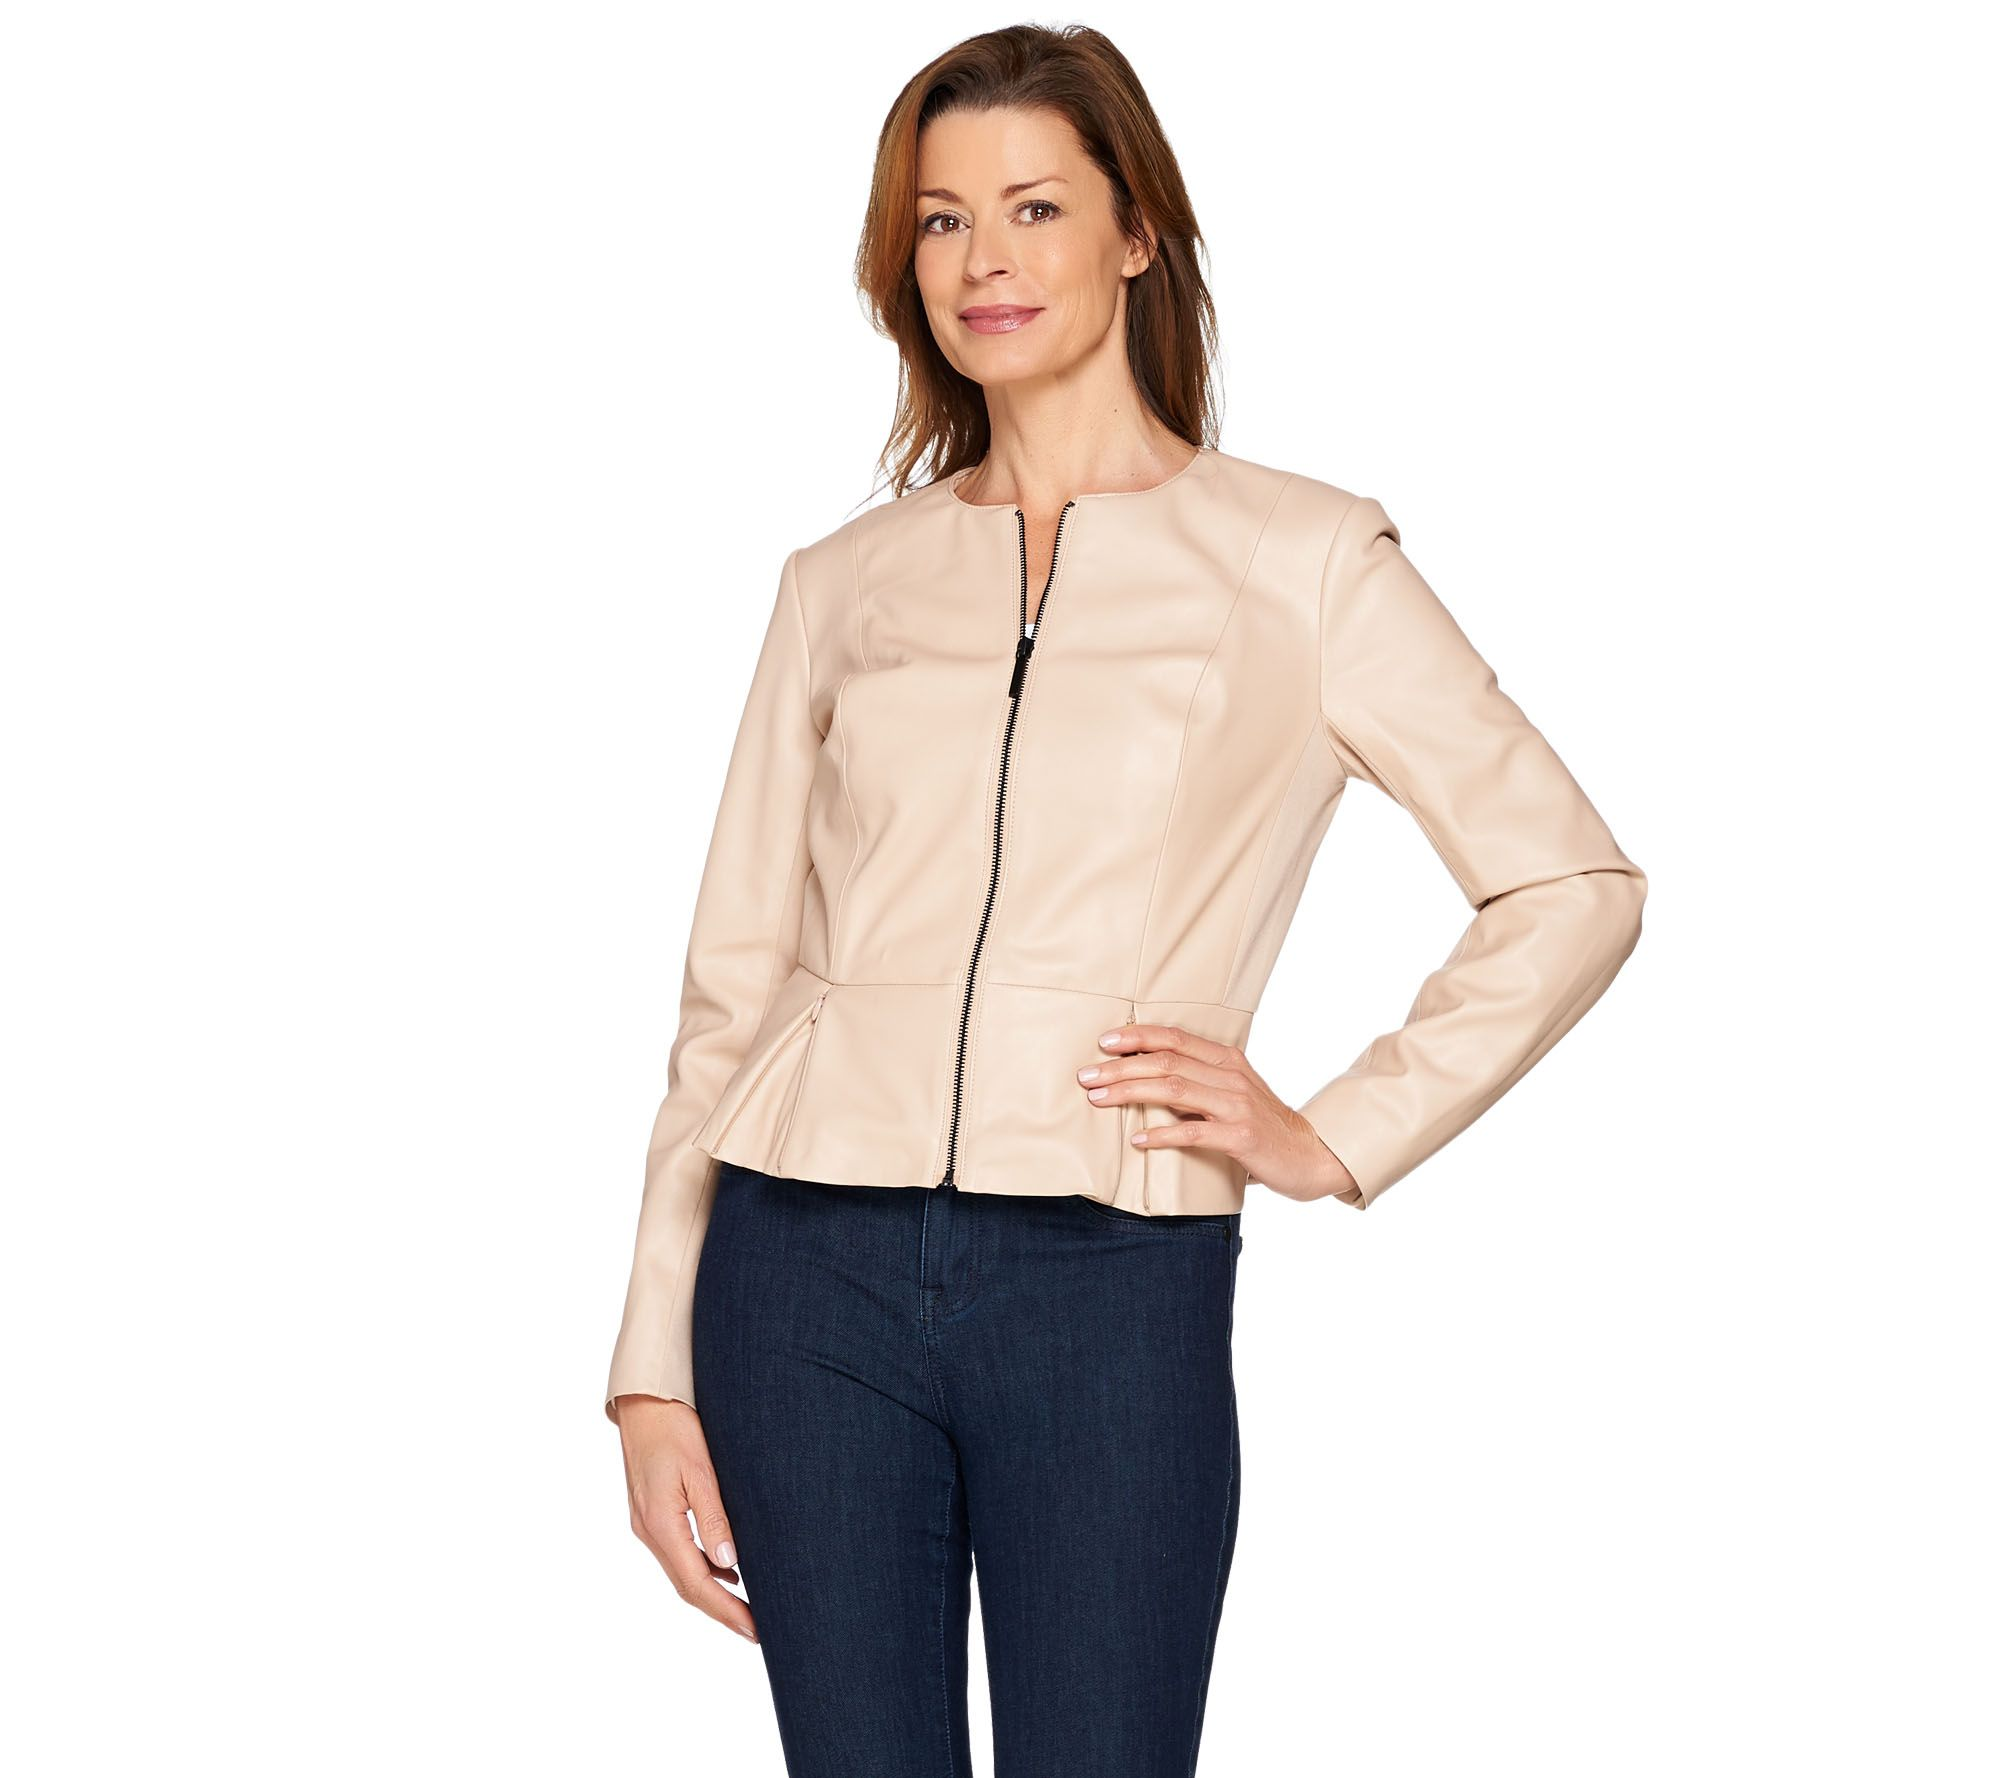 G.I.L.I. — Women's Fashion — QVC.com